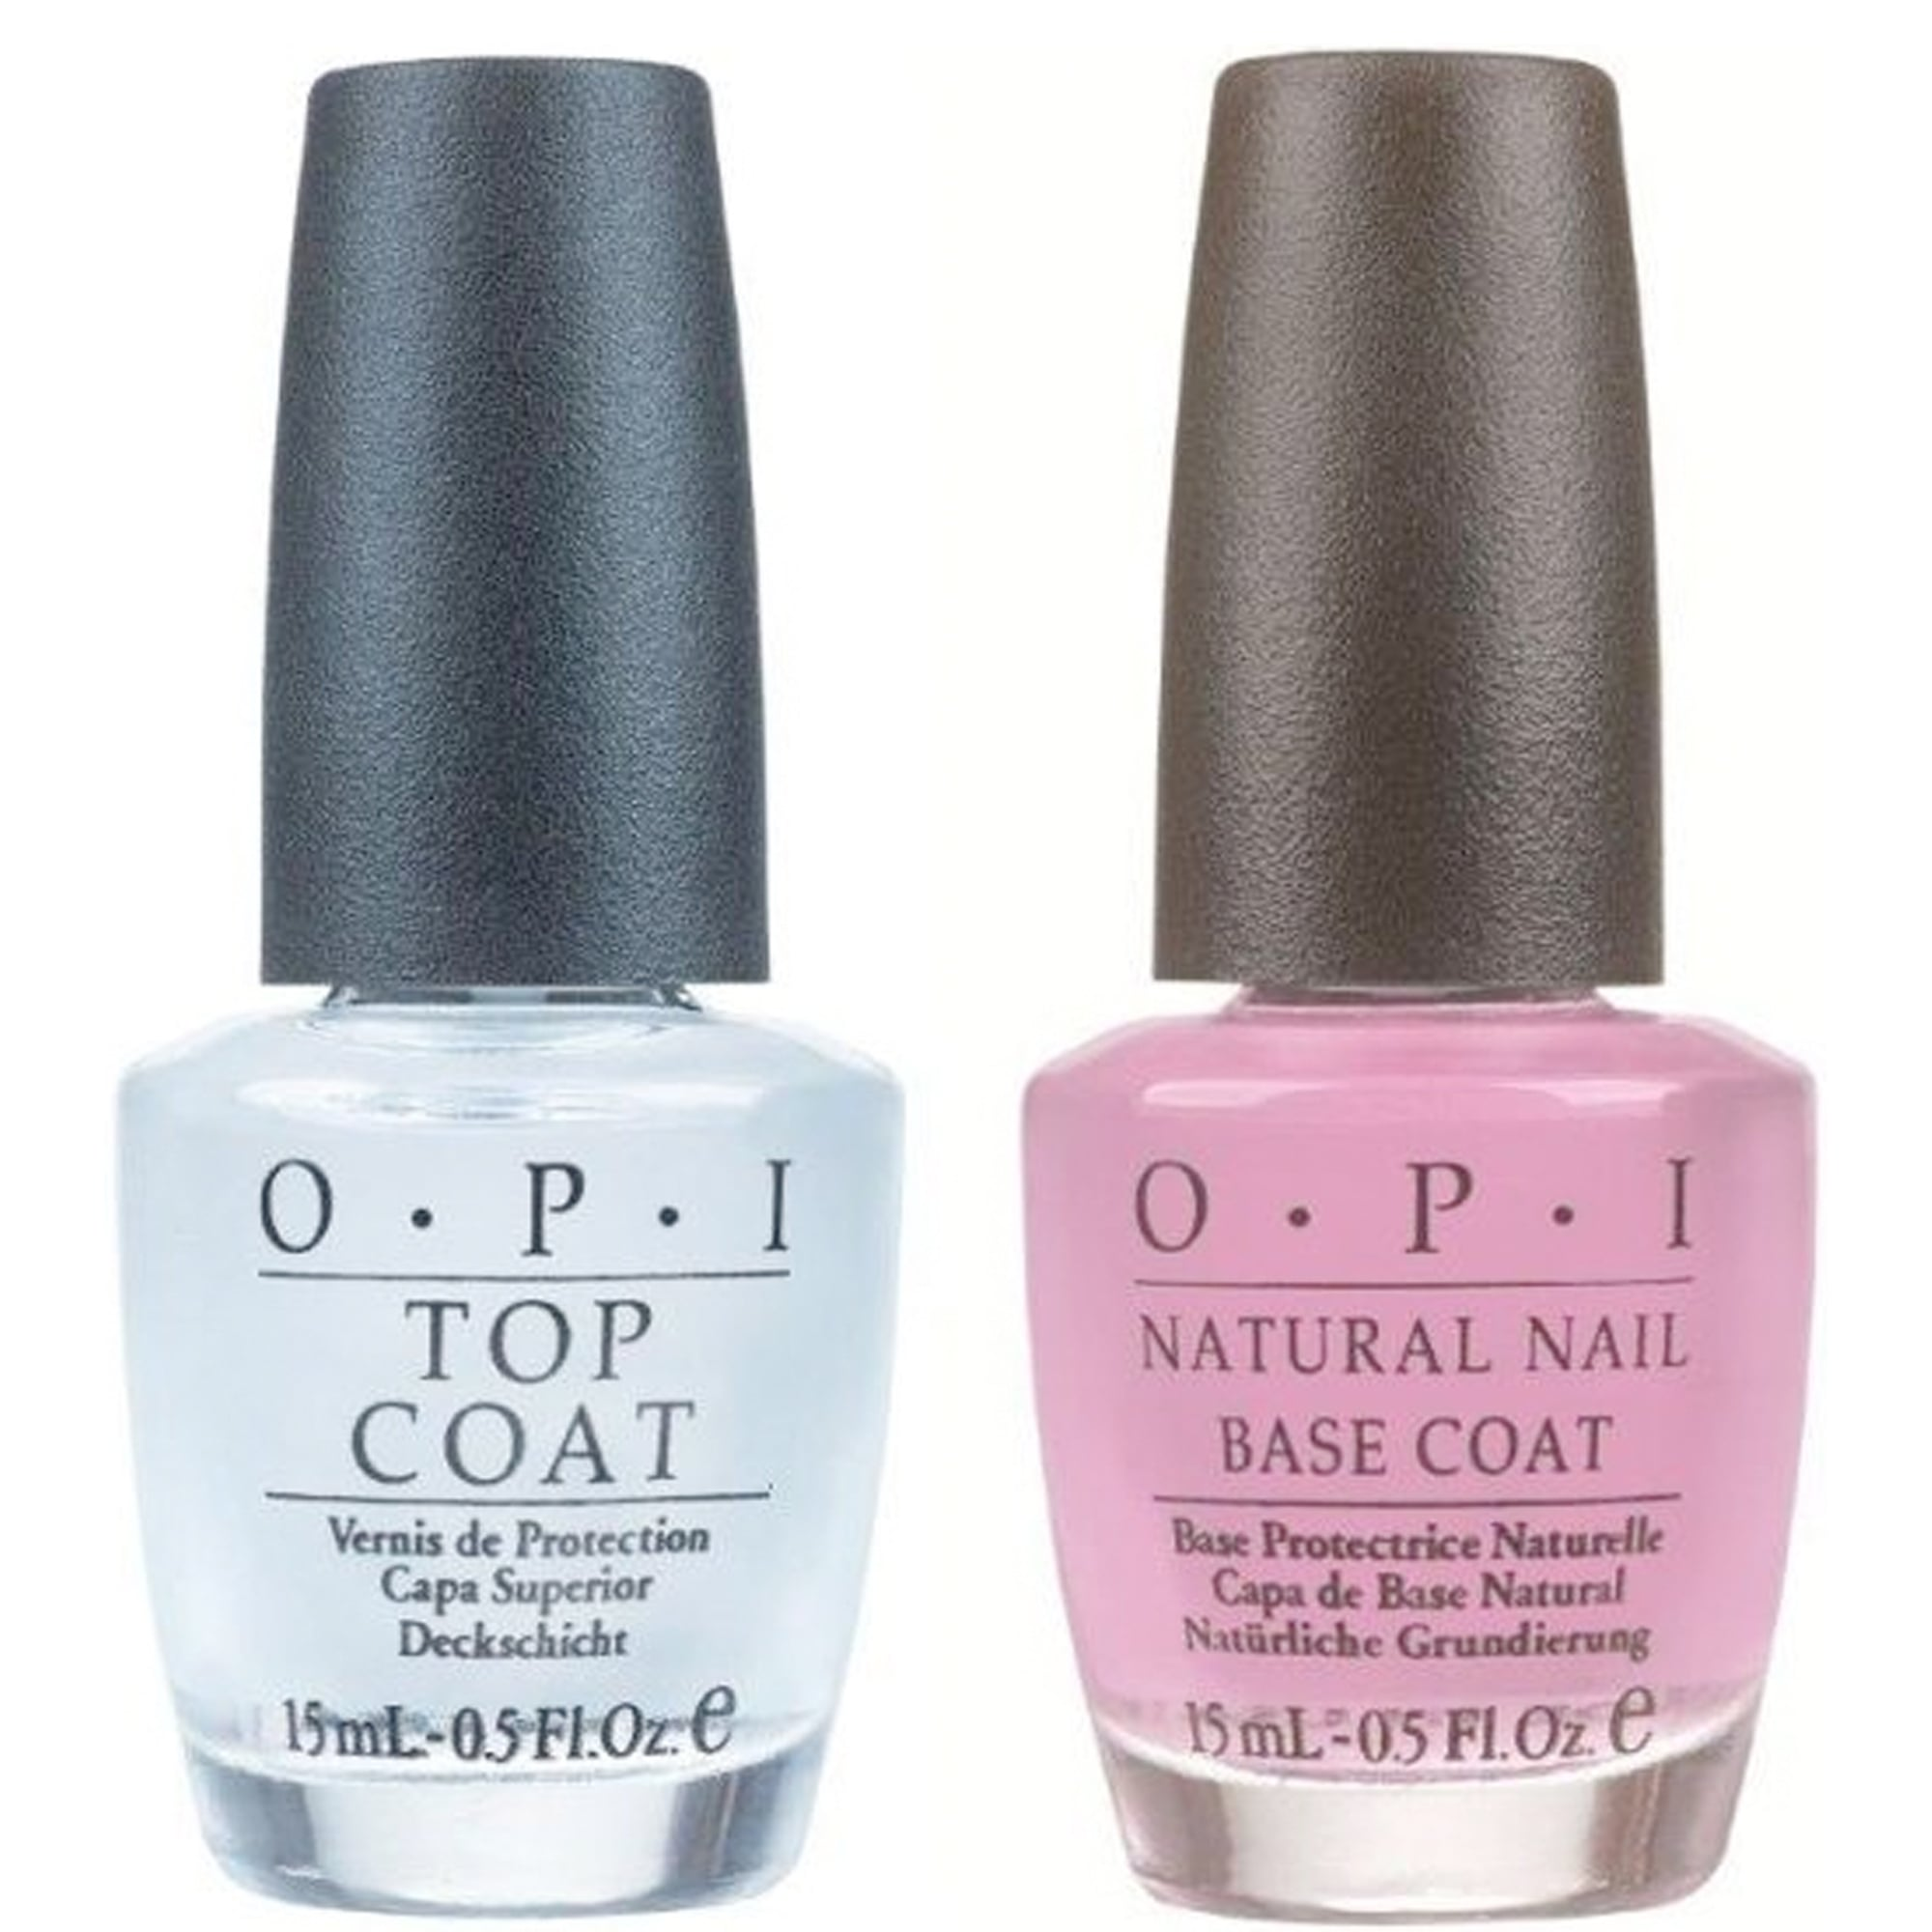 opi nail polish duo natural nail top coat basecoat x2 15ml. Black Bedroom Furniture Sets. Home Design Ideas